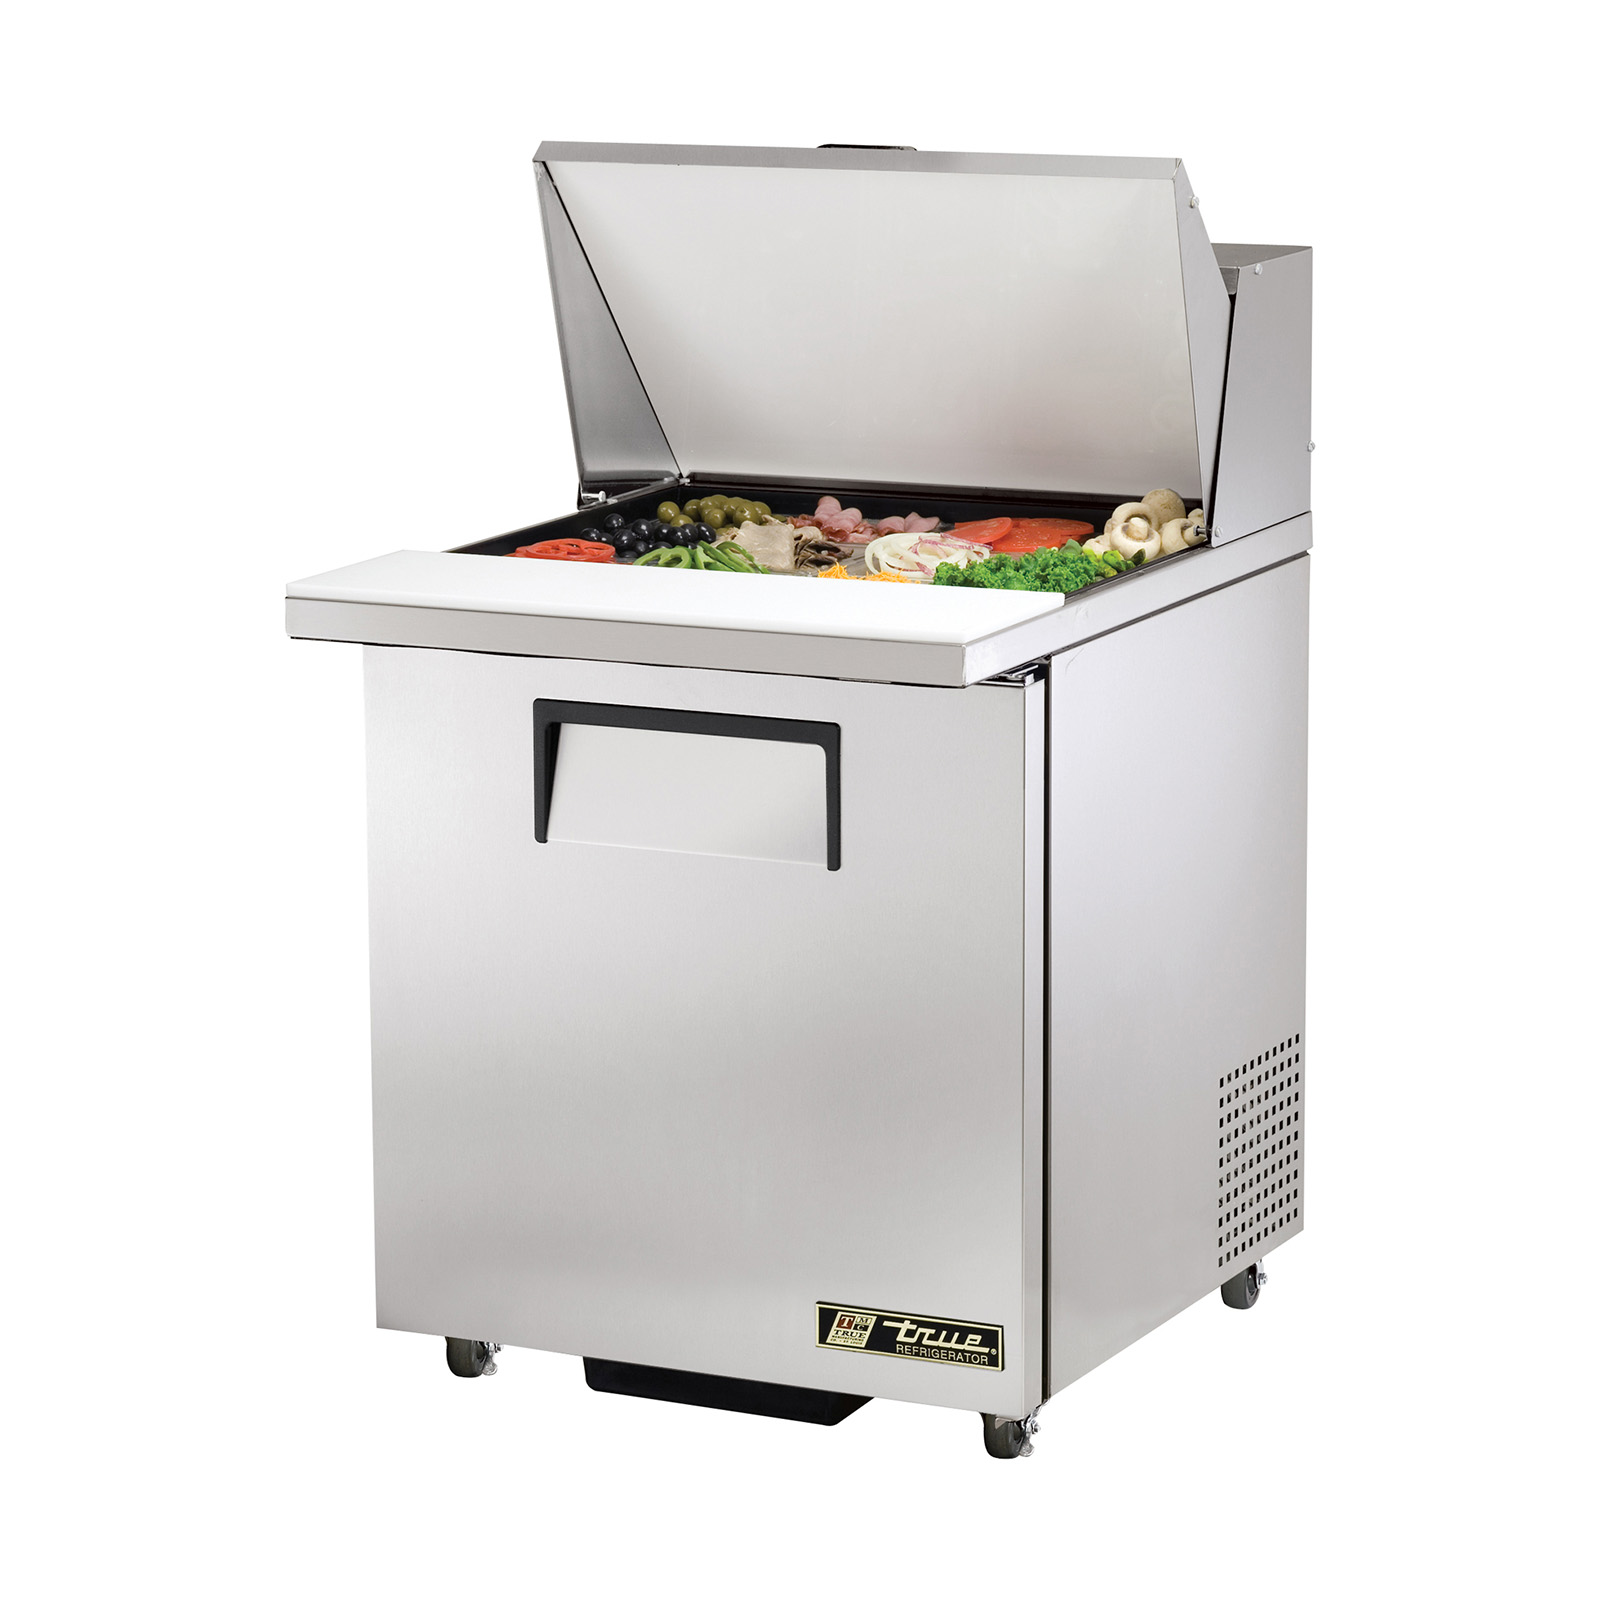 TSSU-27-12M-C-ADA True - ADA Compliant Mega Top Sandwich/Salad Unit (12) 1/6 size (4